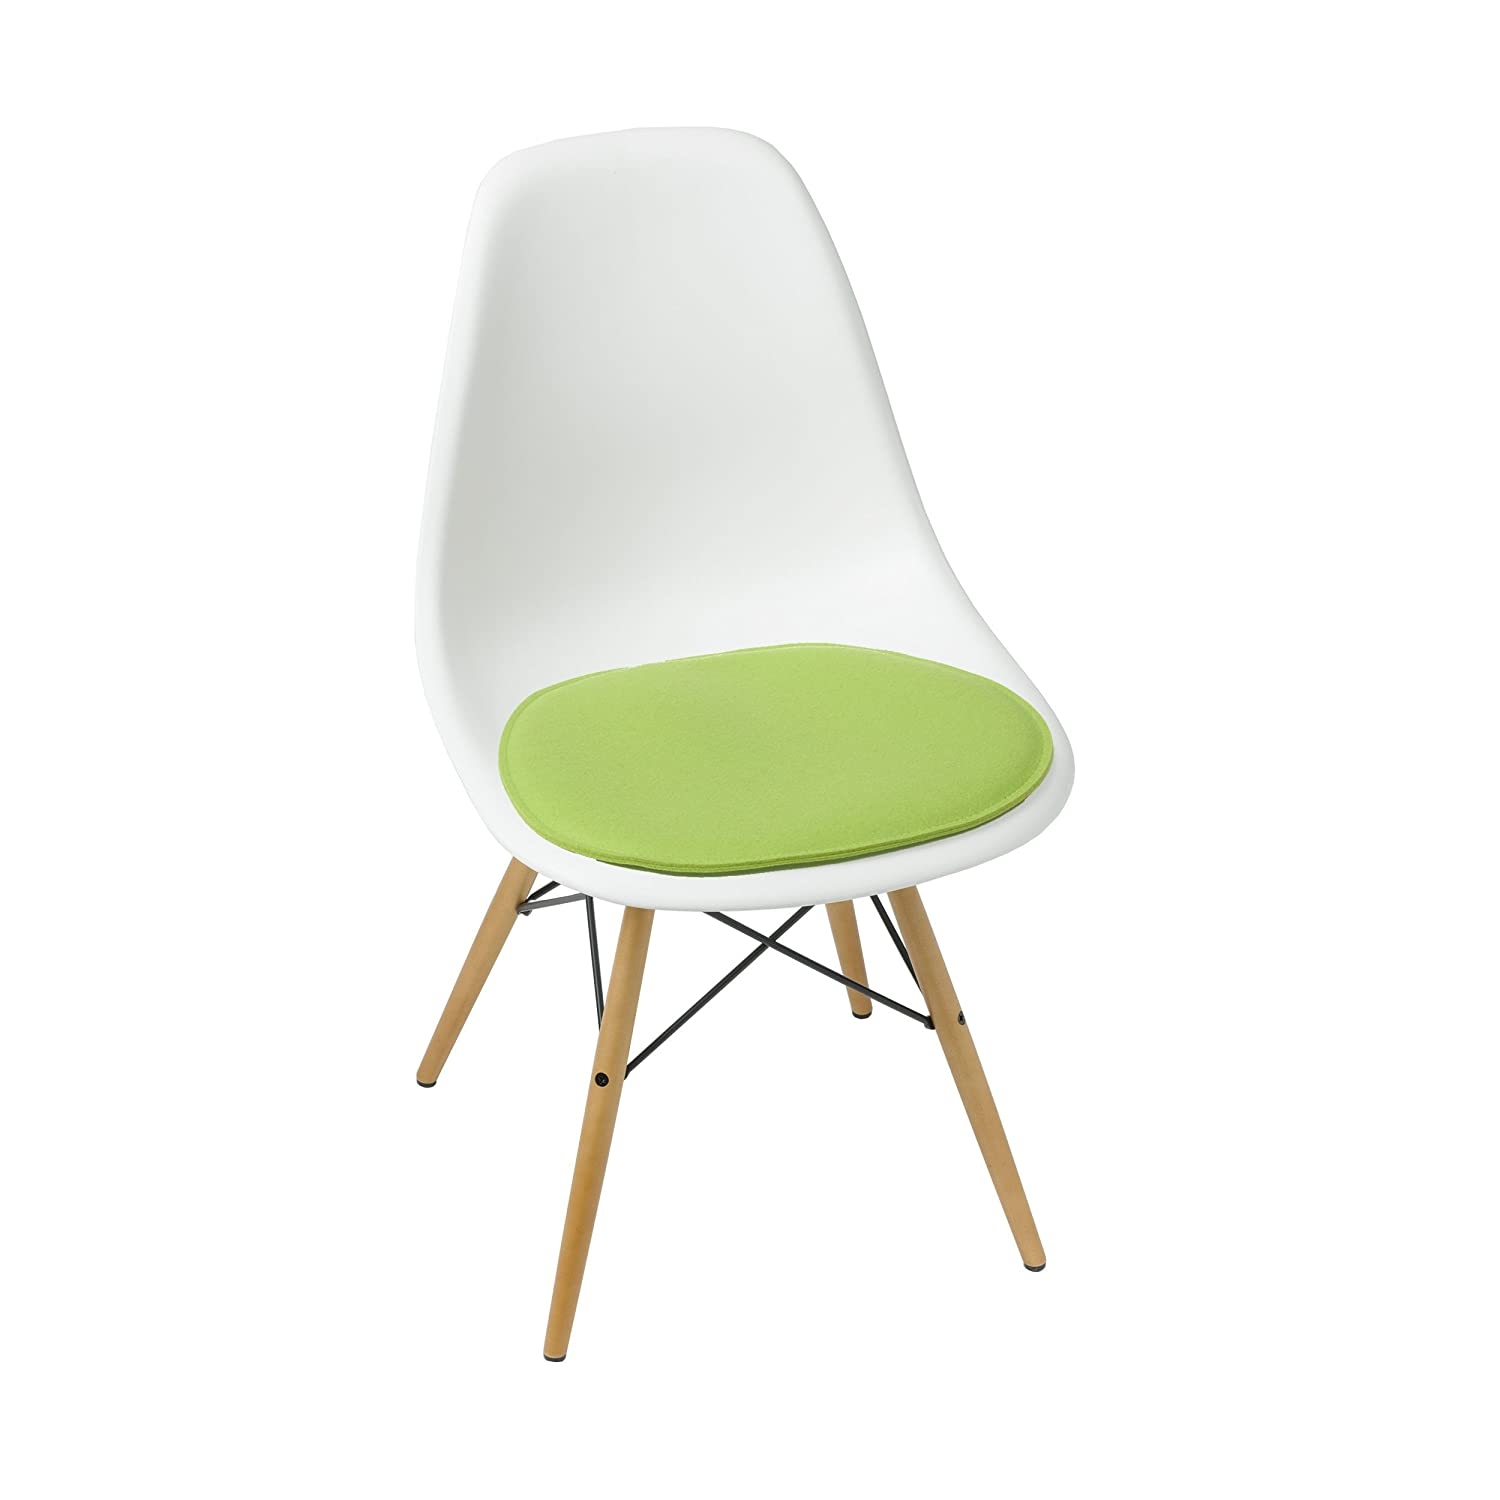 Cojín de asiento para Eames Side Chair 2 capas Kiwi: Amazon ...